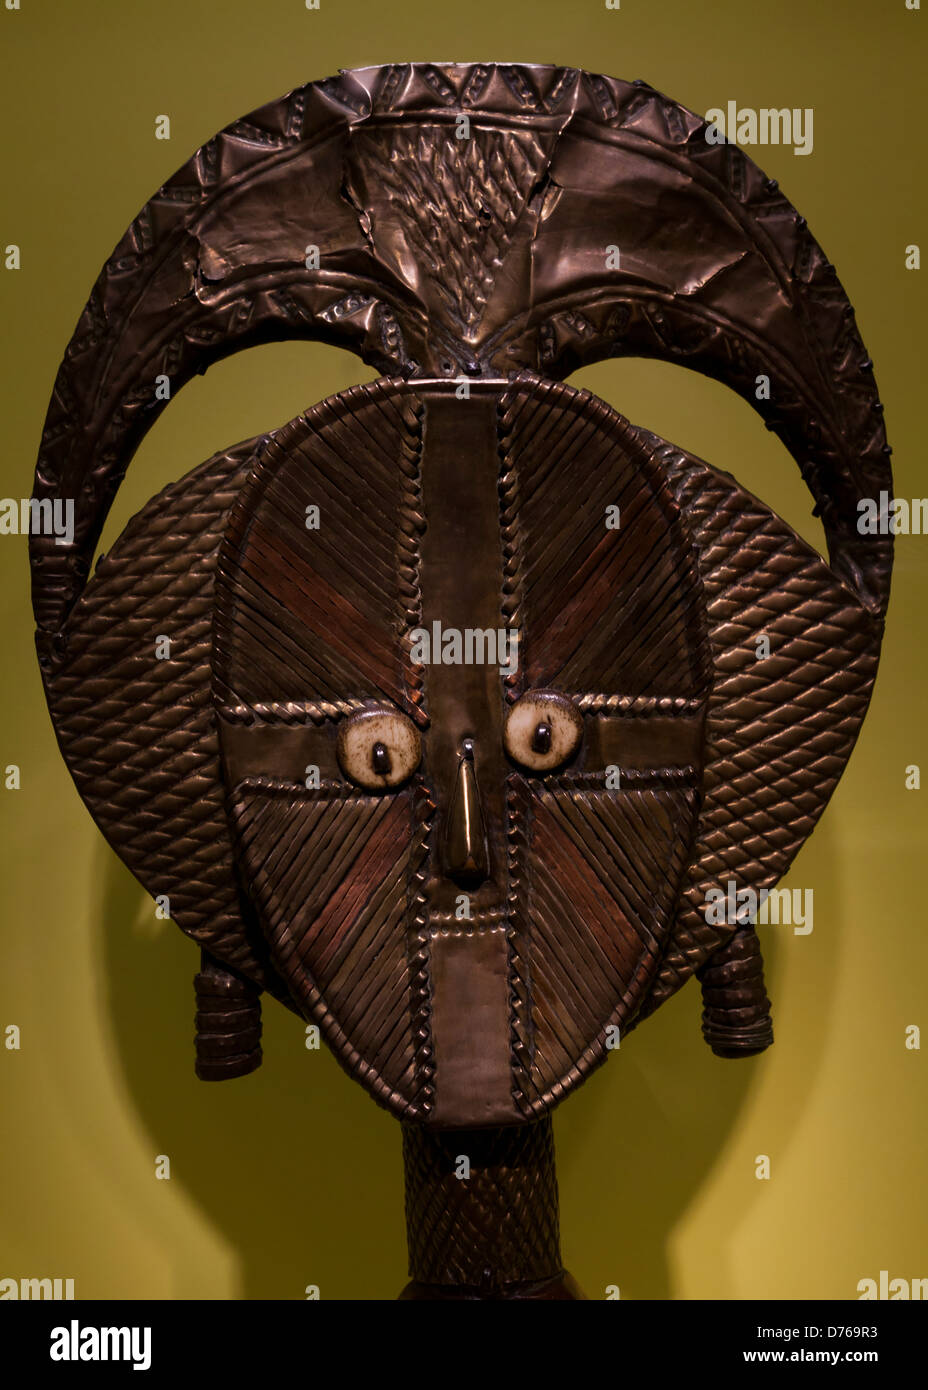 Ceremonial mask of the Isoko peoples, Nigeria - Stock Image